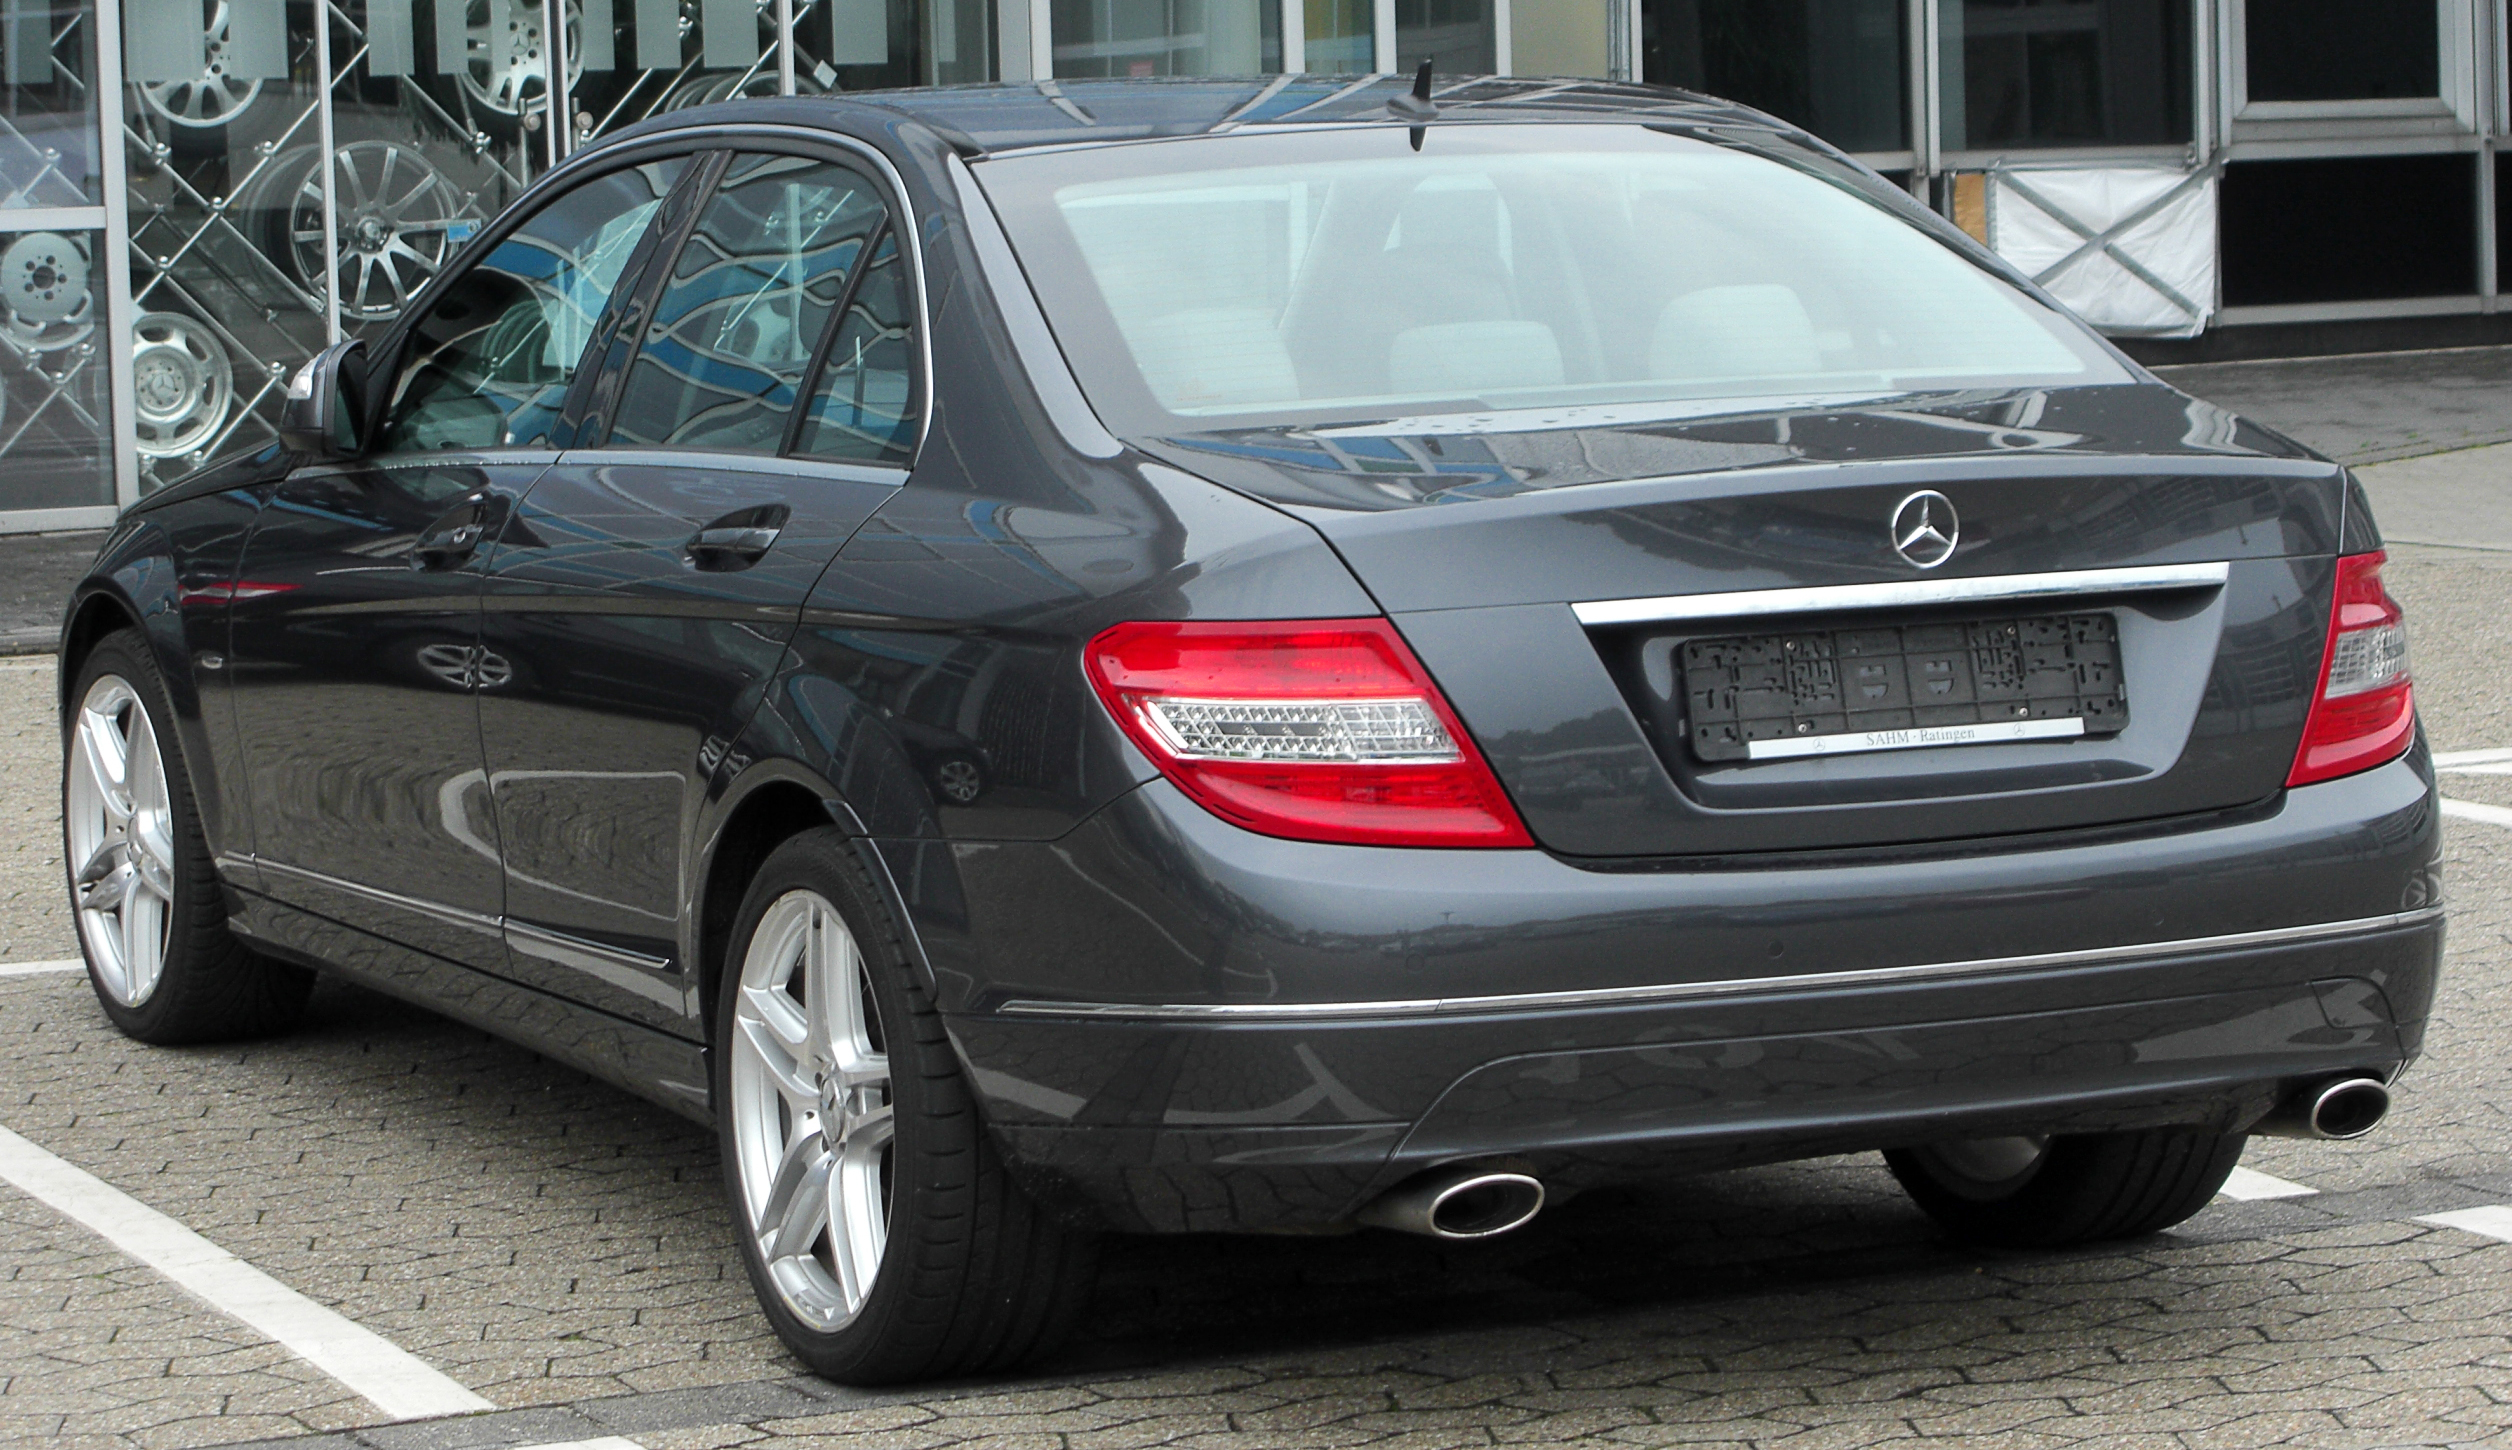 file mercedes c 320 cdi avantgarde w204 rear wikimedia commons. Black Bedroom Furniture Sets. Home Design Ideas